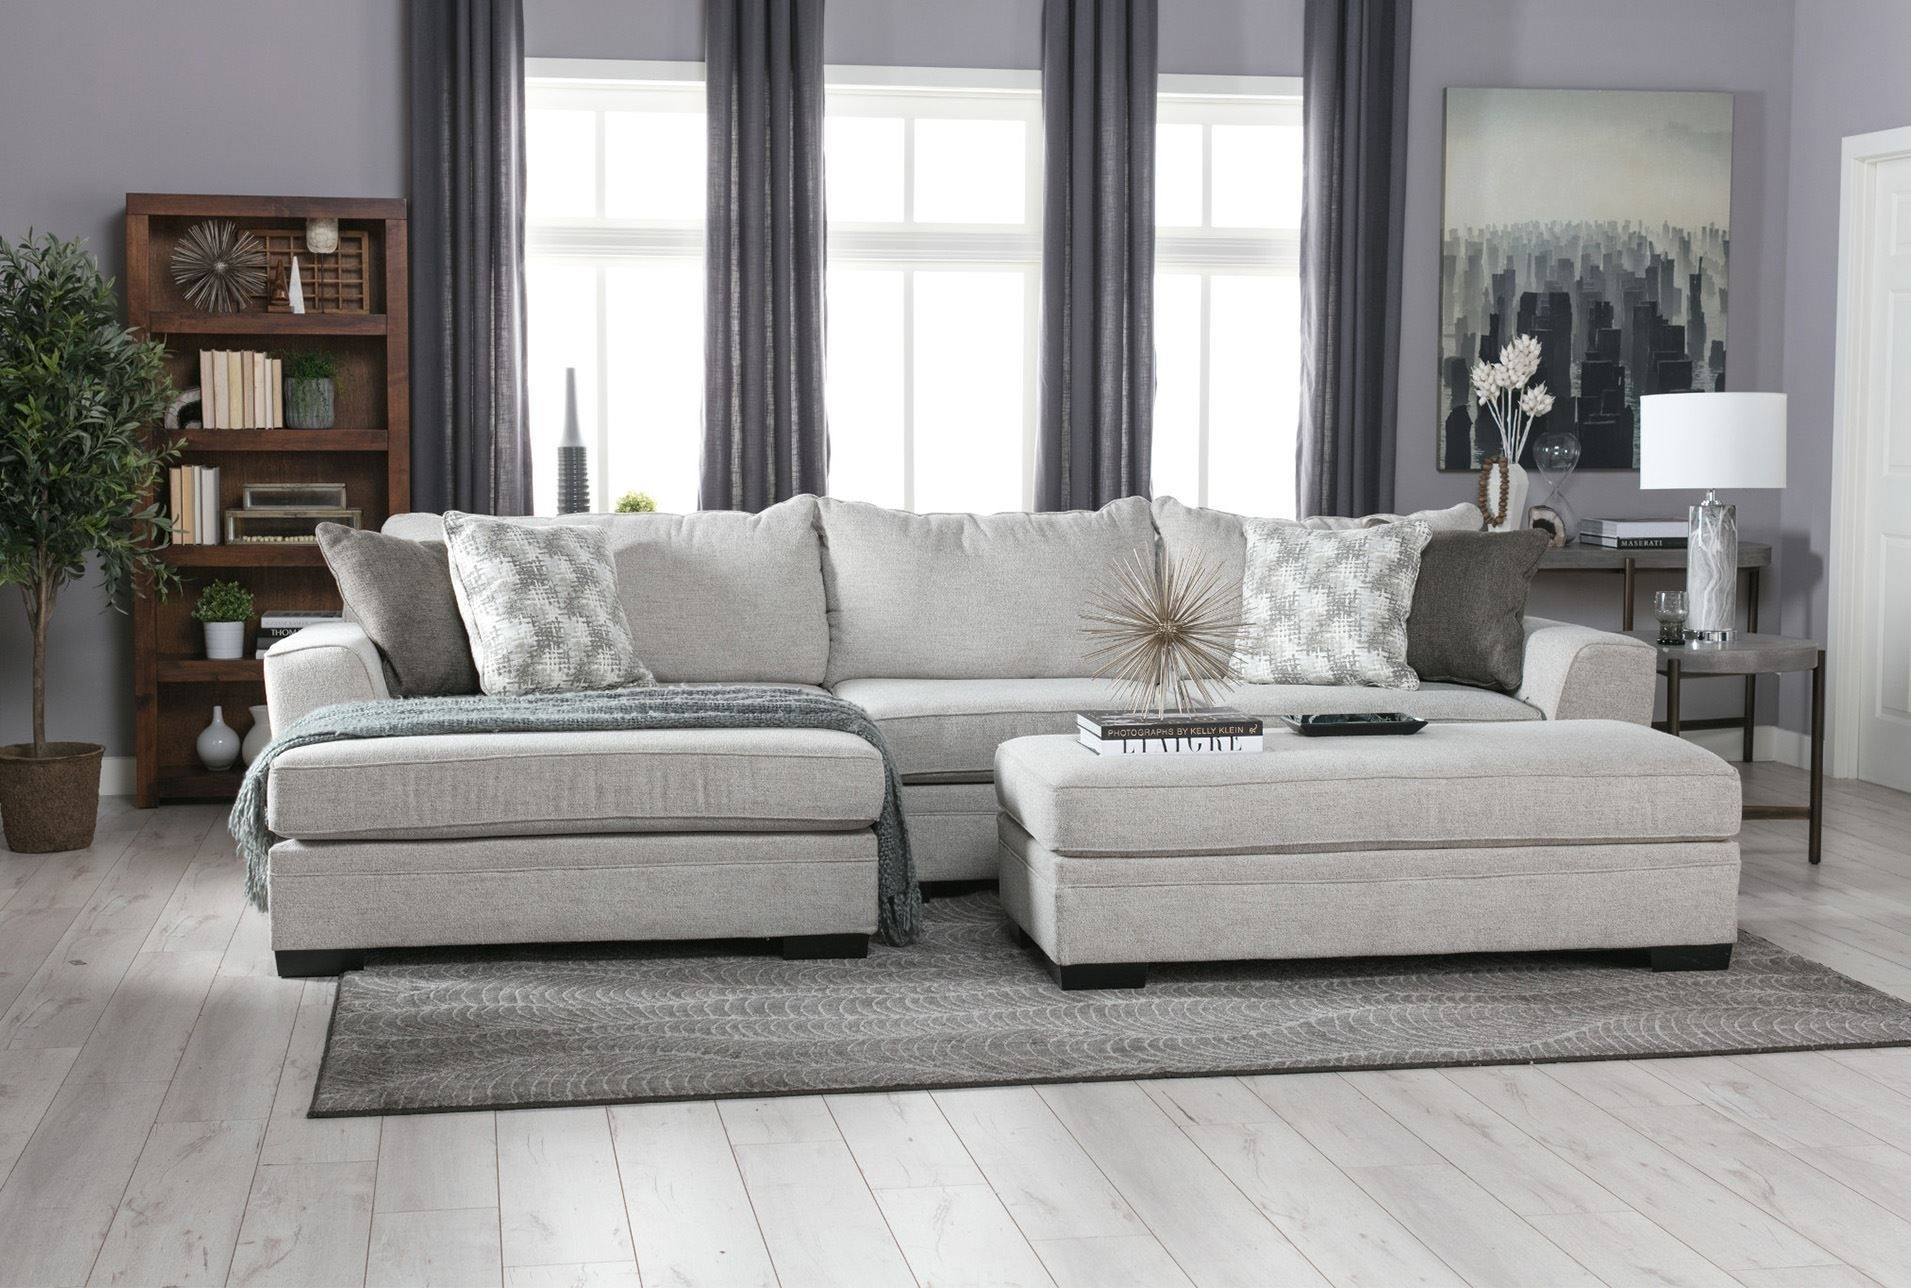 Delano 2 Piece Sectional W/laf Oversized Chaise | Sylvia Son Within Marissa Ii 3 Piece Sectionals (View 13 of 25)